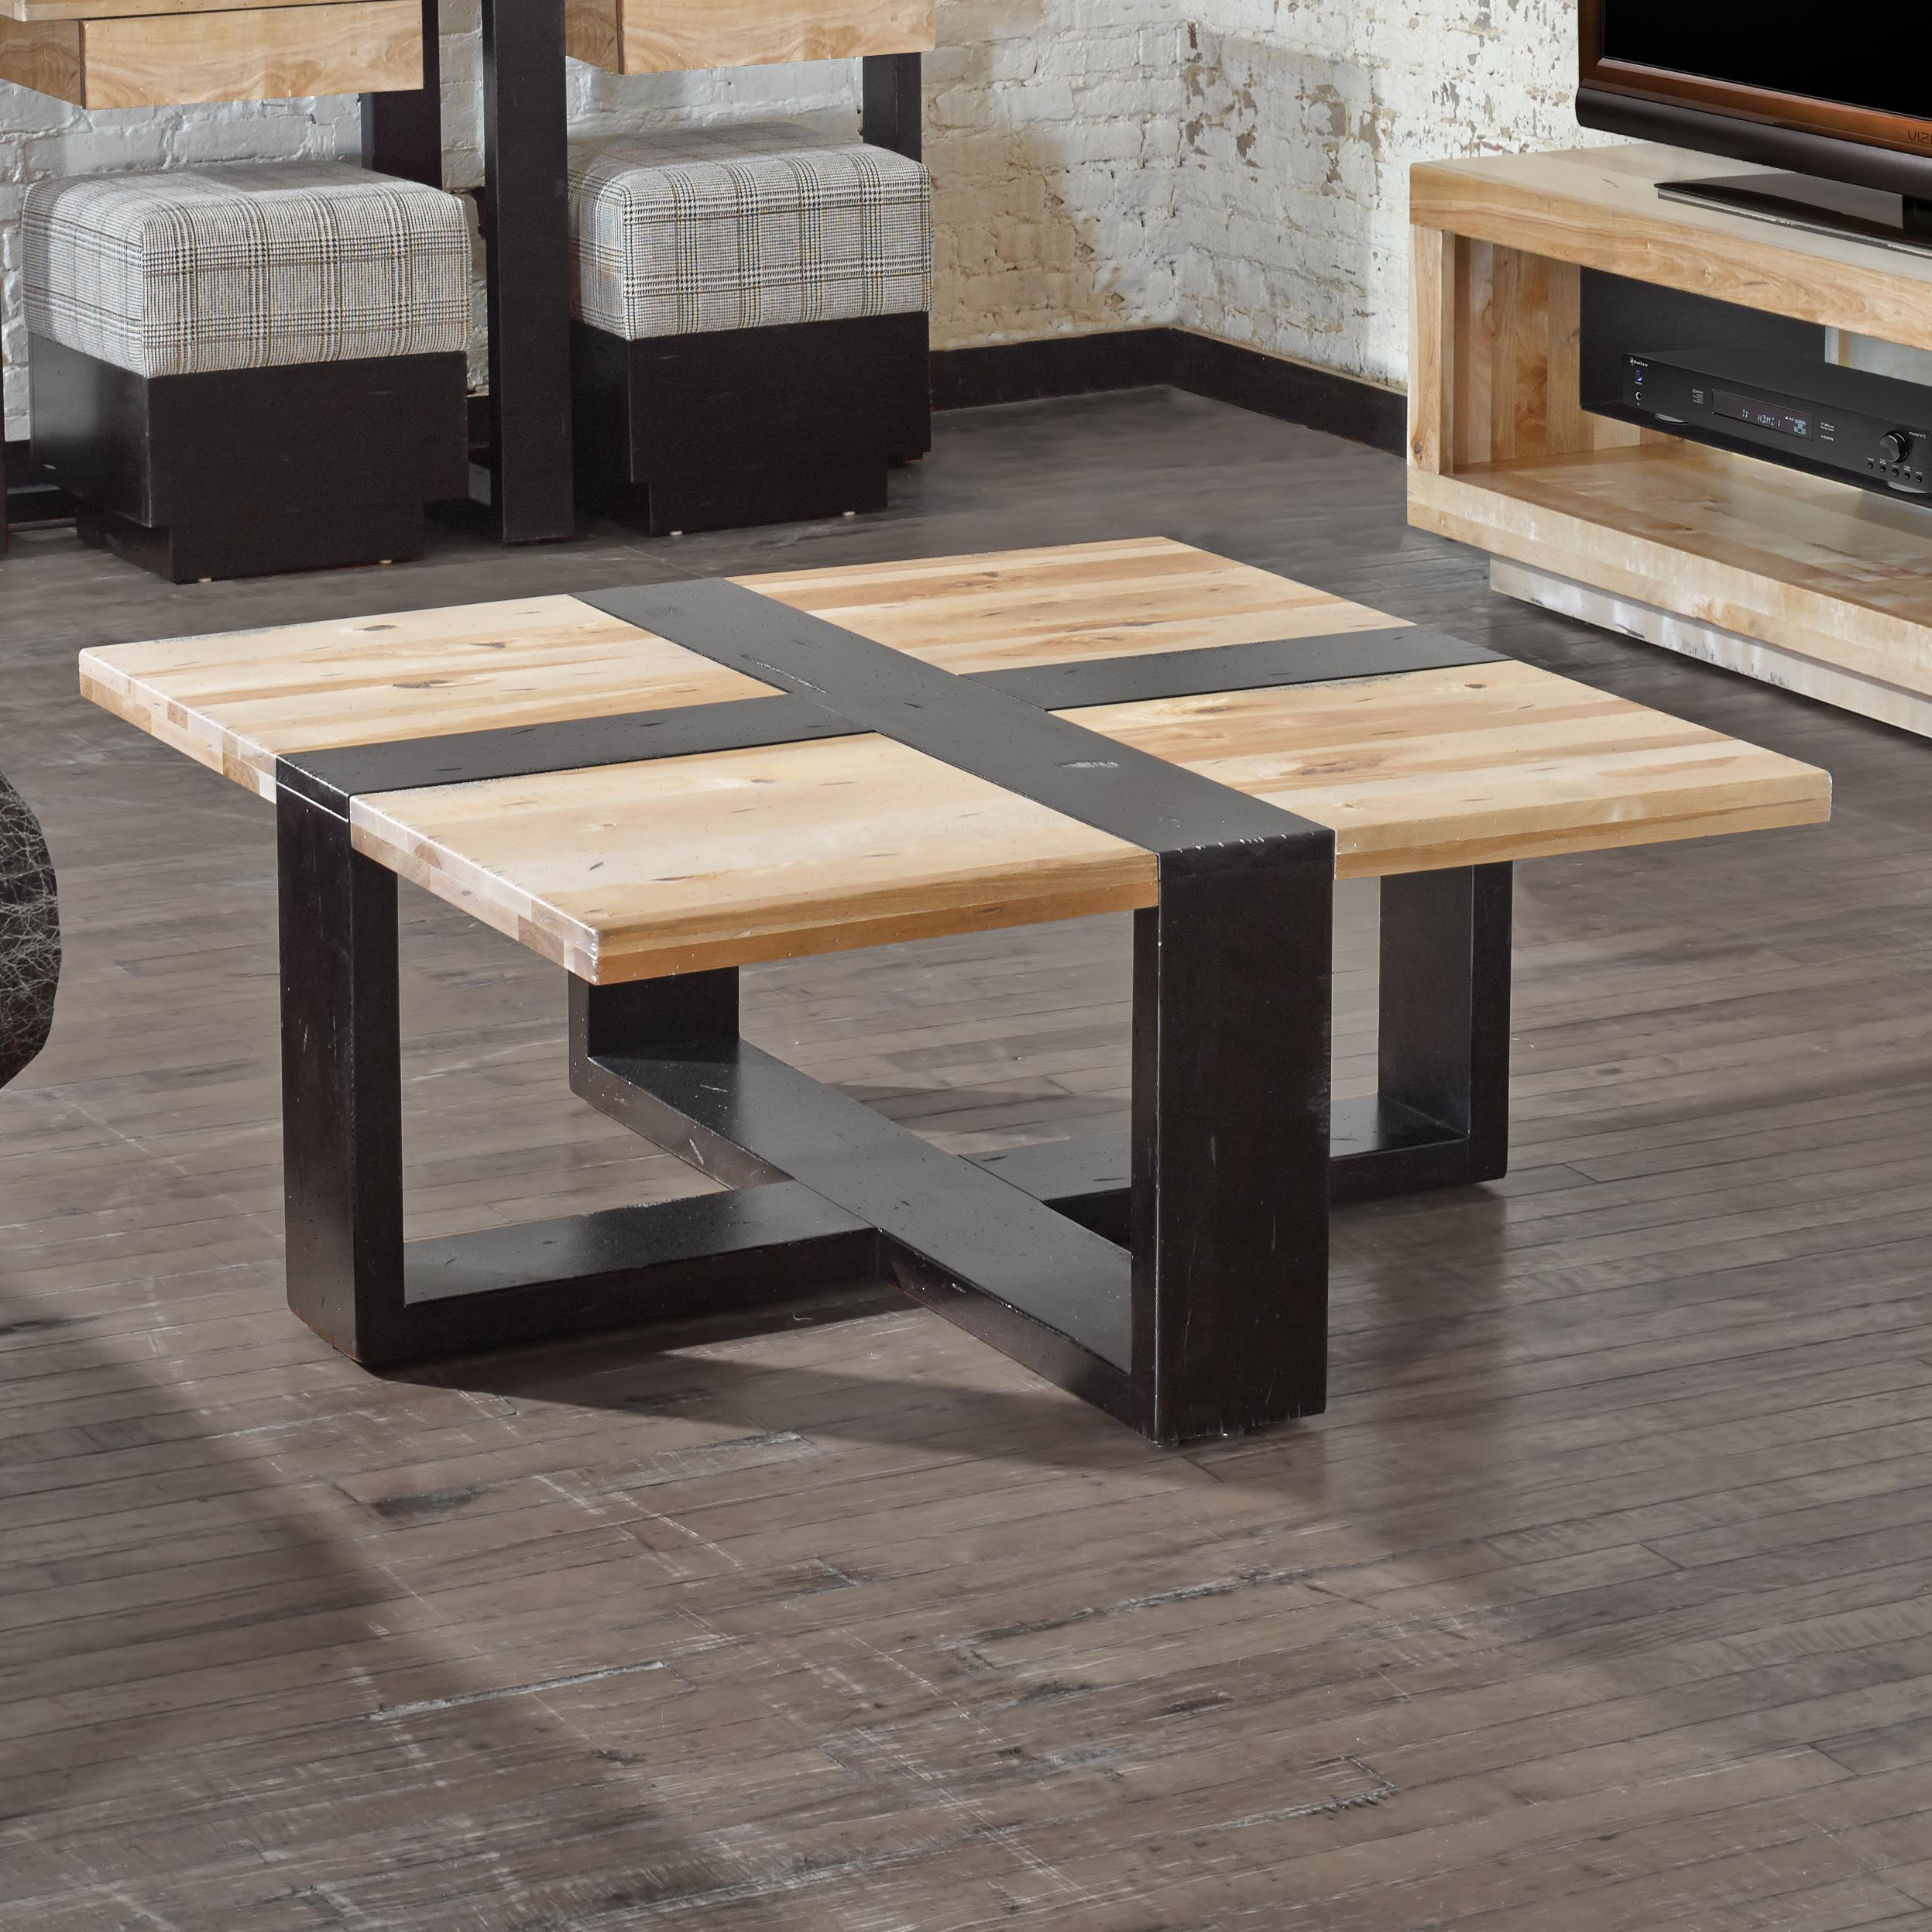 Loft - Living <b>Customizable</b> Square Coffee Table by Canadel at Dinette Depot